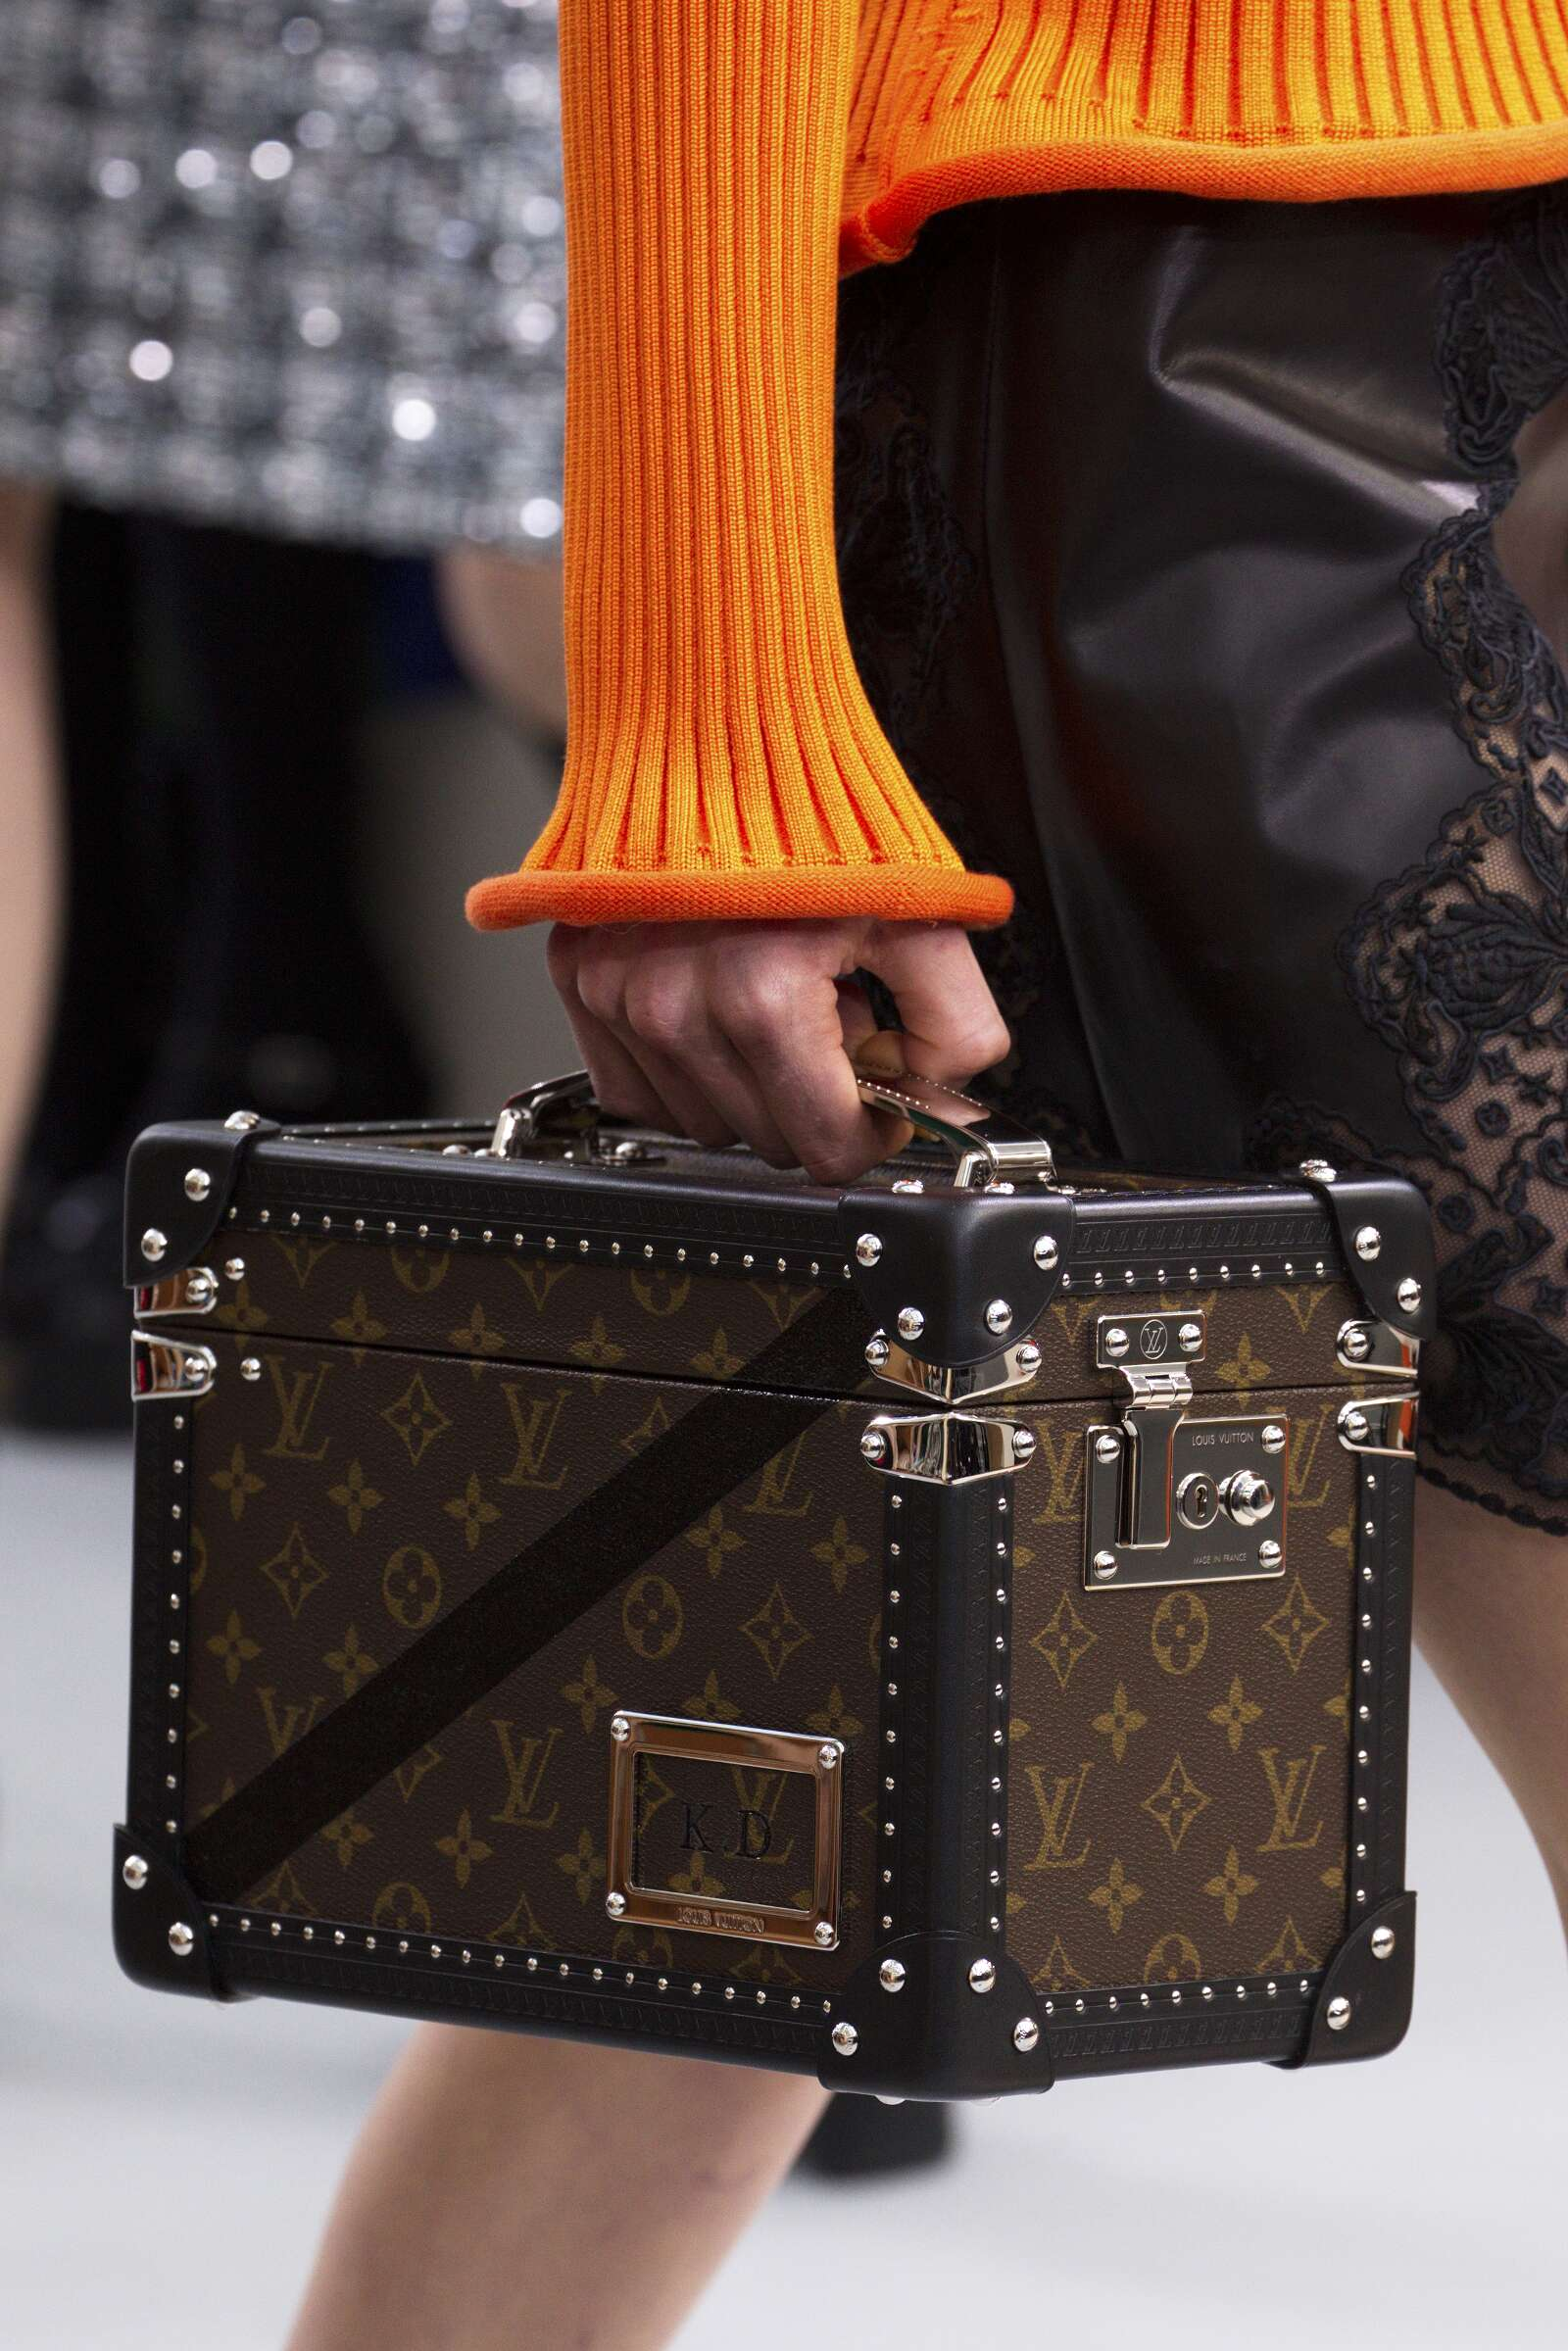 Catwalk Louis Vuitton Bag Details Fall Winter 2015 16 Women's Collection Paris Fashion Week